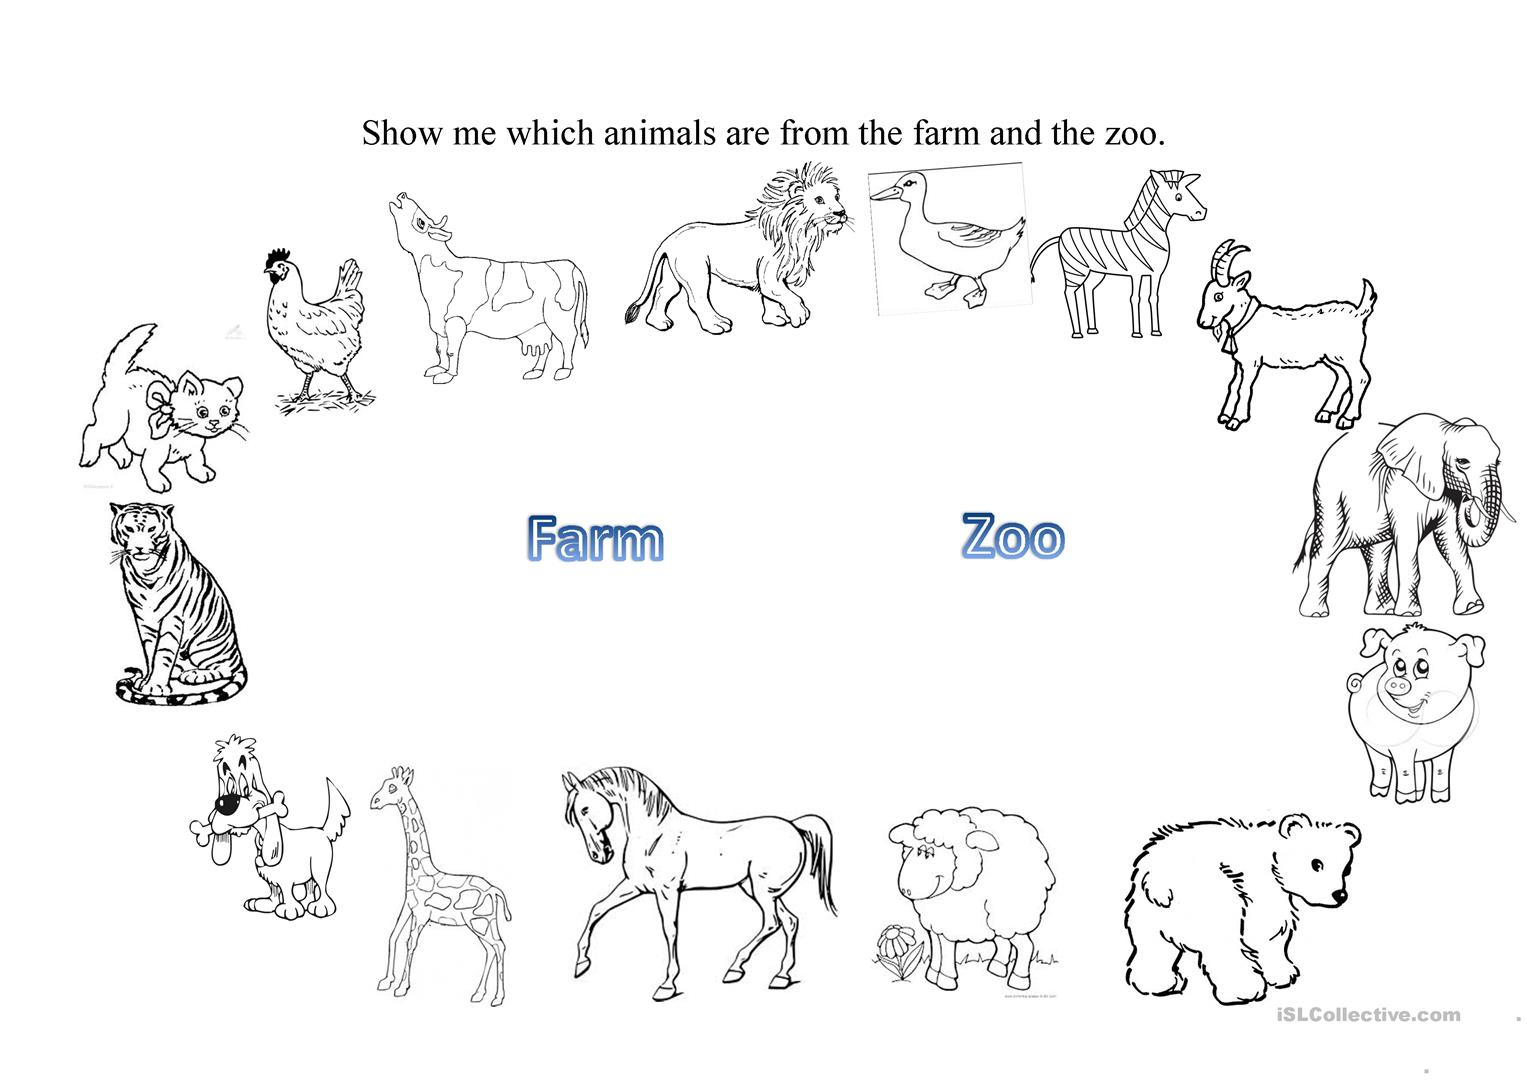 Worksheet About Zoo Animals